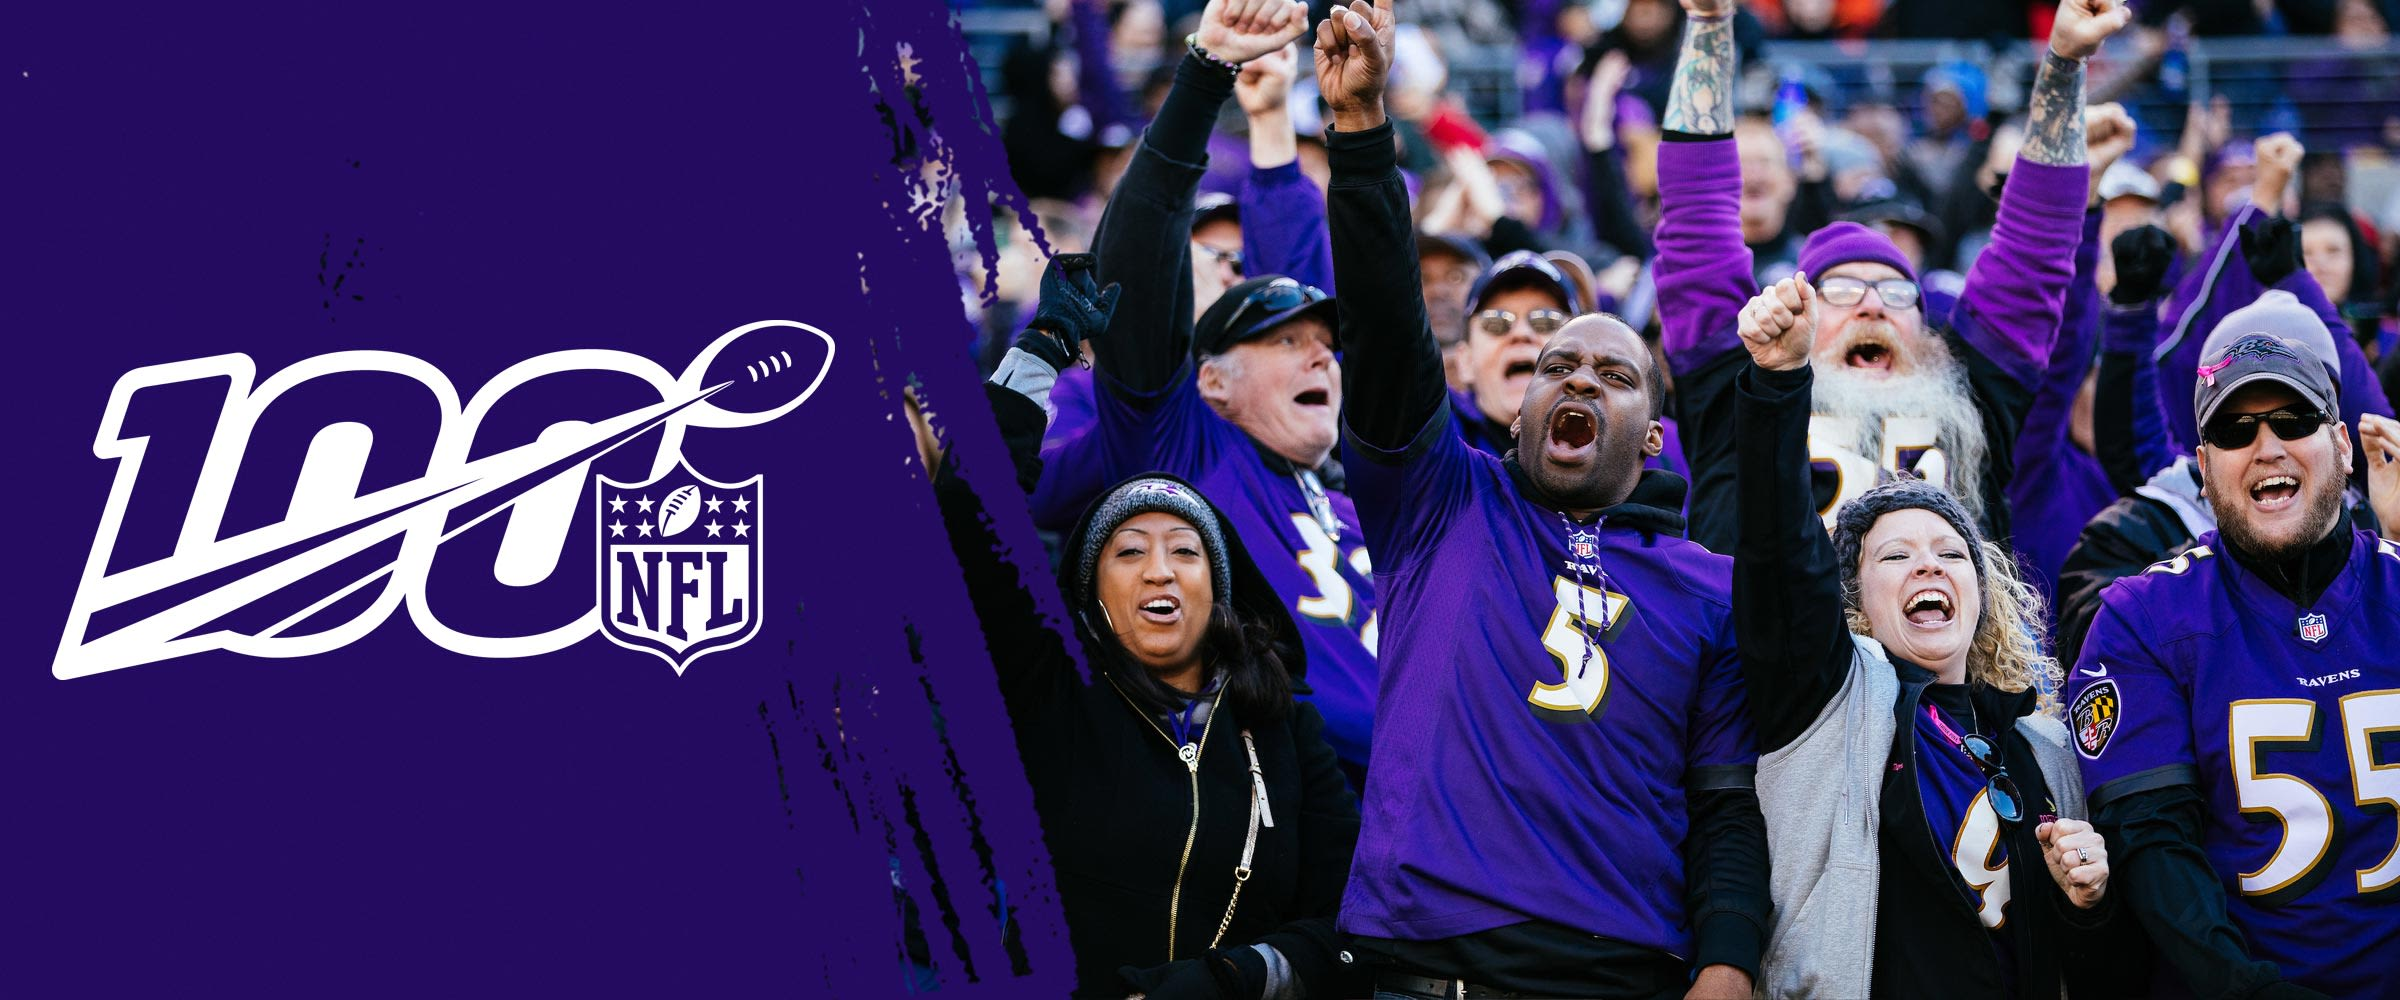 Contest-NFL100Tickets